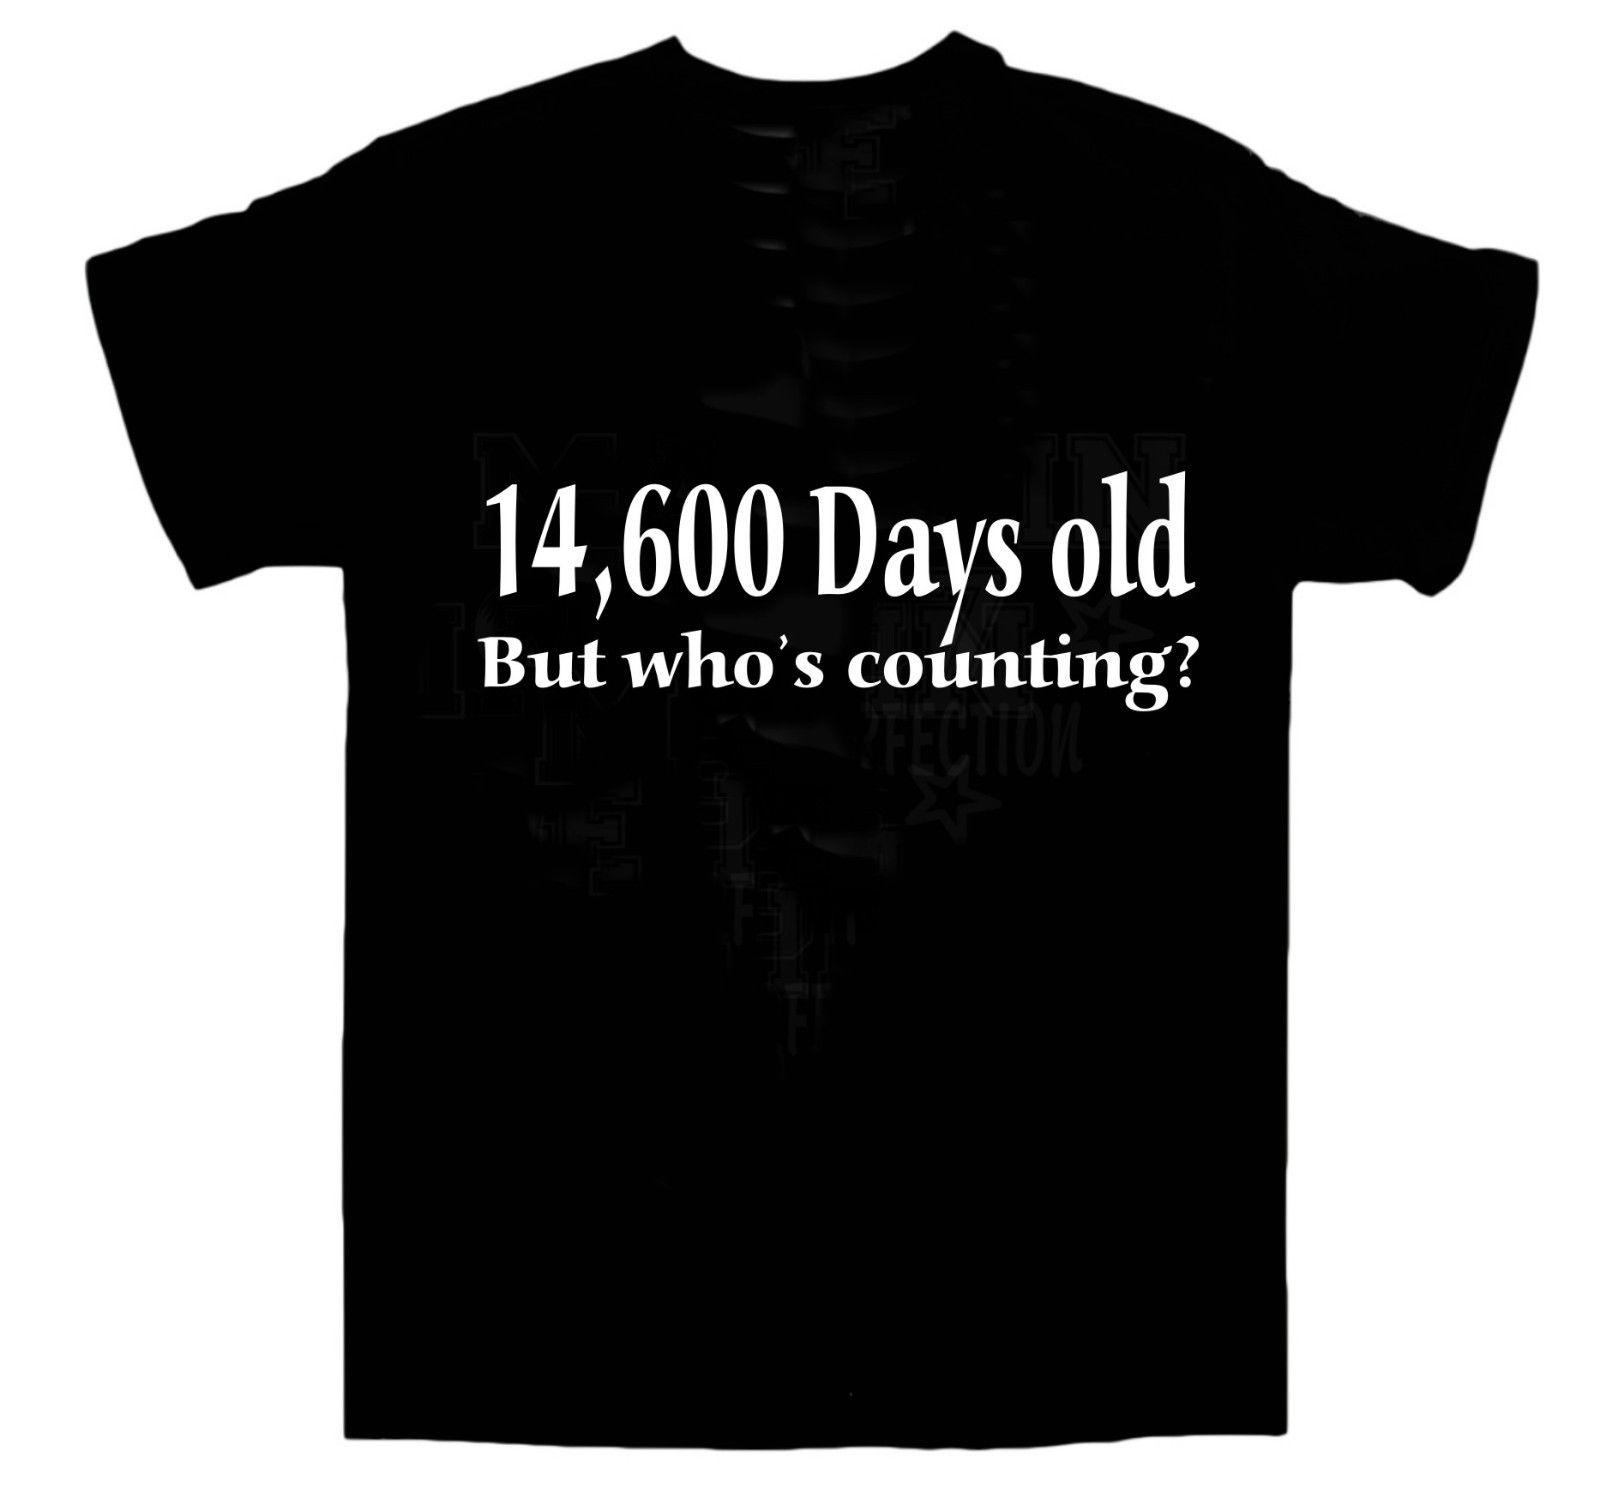 Custom 40th BIRTHDAY T Shirt 14600 Days Old Great Birthday Party Gift Size XL Awesome Shirts For Guys Cool Tee Designs From Xm28tshirt